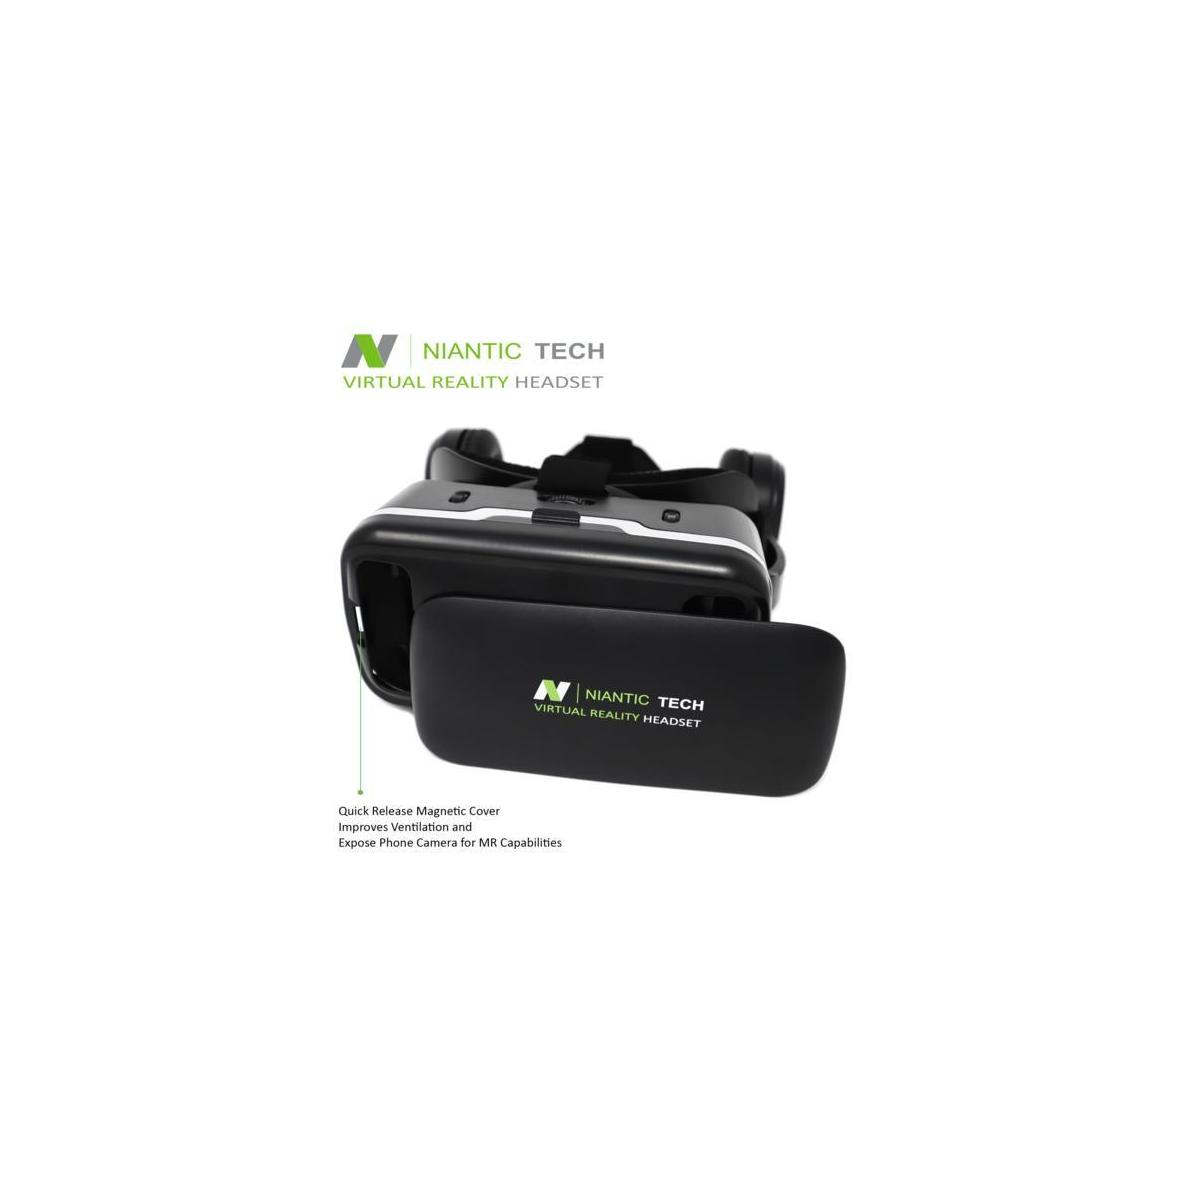 VR Headset for iPhone and Android Phone